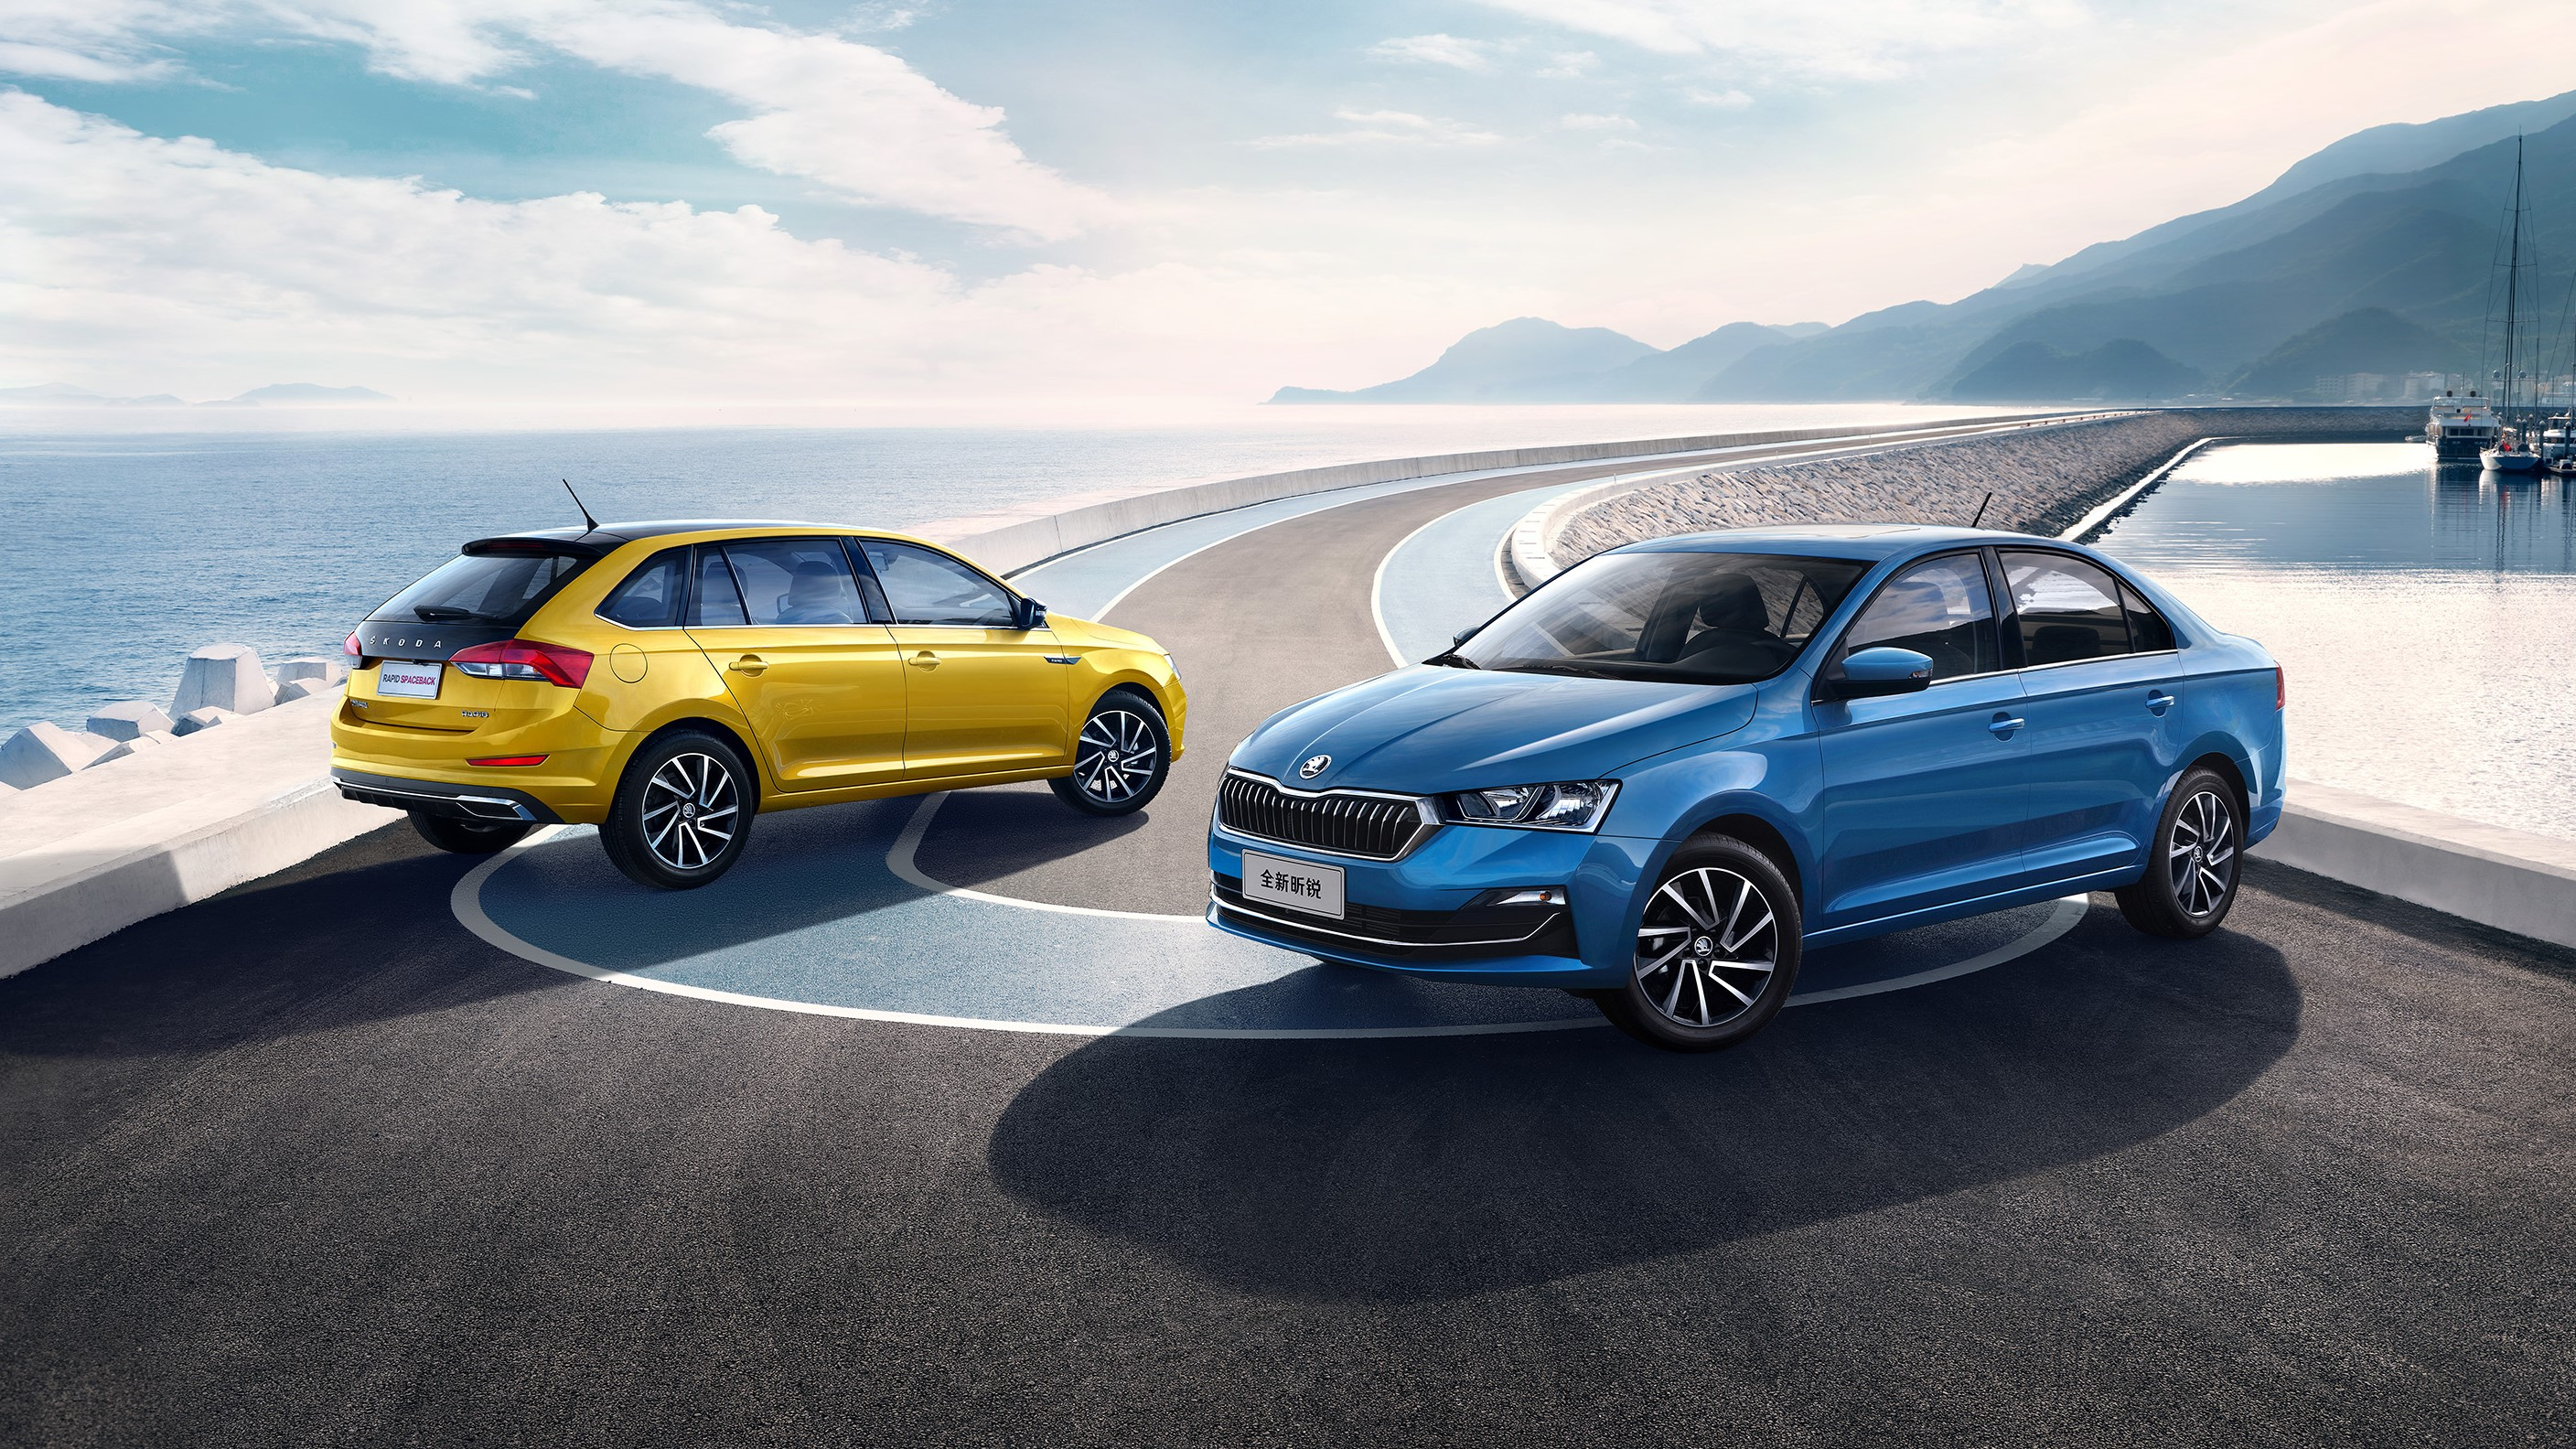 Youthful and dynamic look for the new SKODA RAPID and RAPID SPACEBACK in China - Image 4